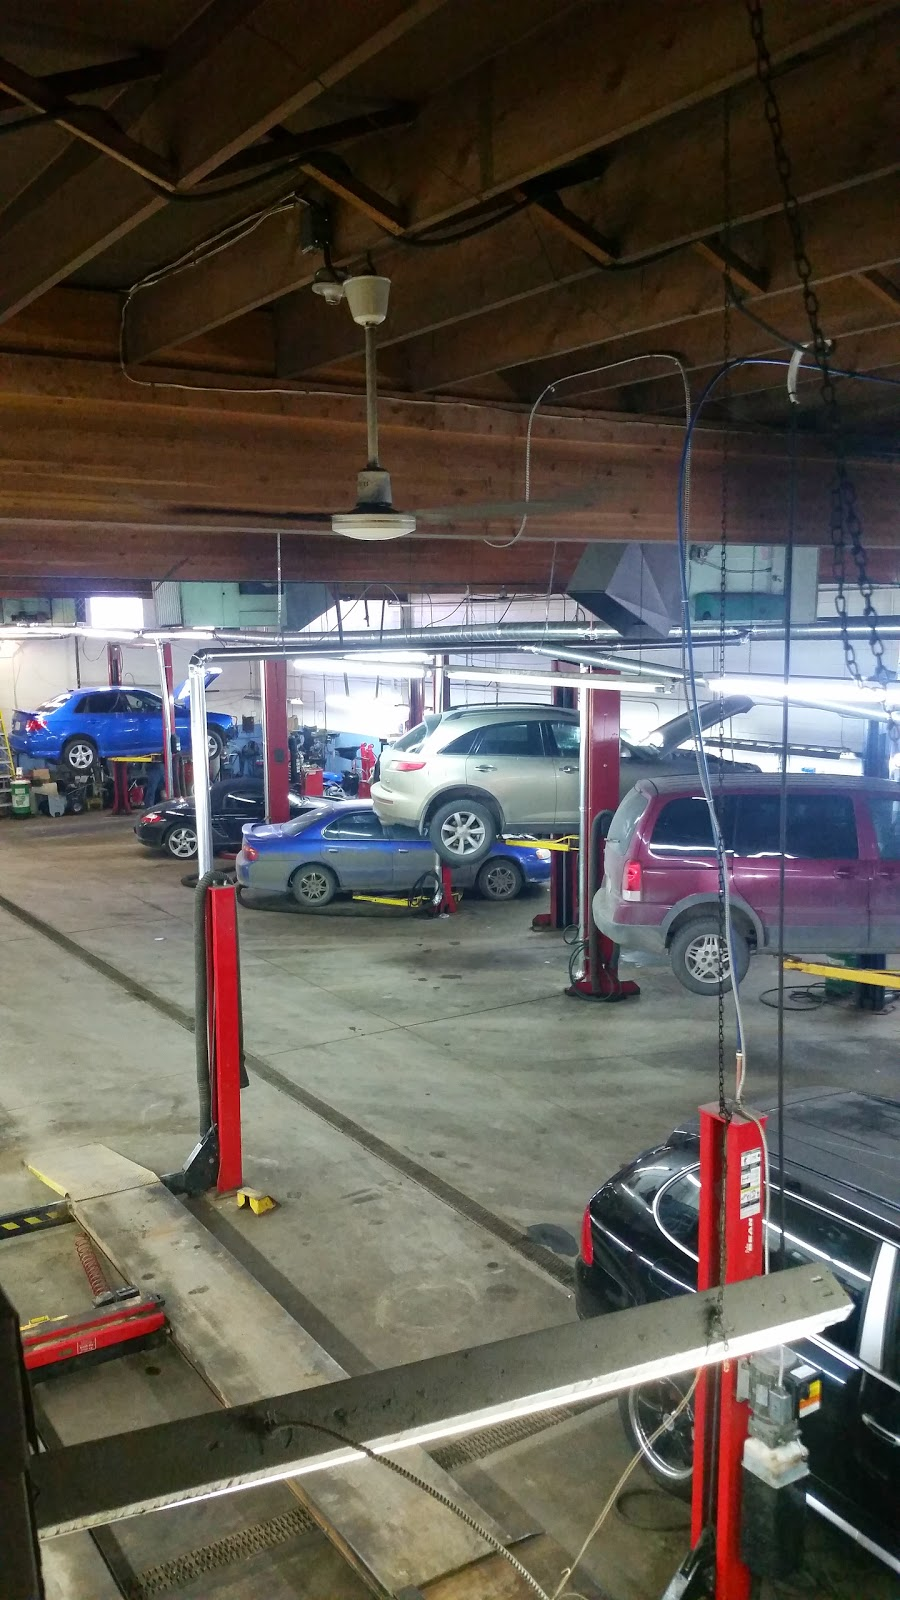 Center Auto Repair & Maintenance | car repair | 10567 106 St NW, Edmonton, AB T5H 2X5, Canada | 7804259132 OR +1 780-425-9132